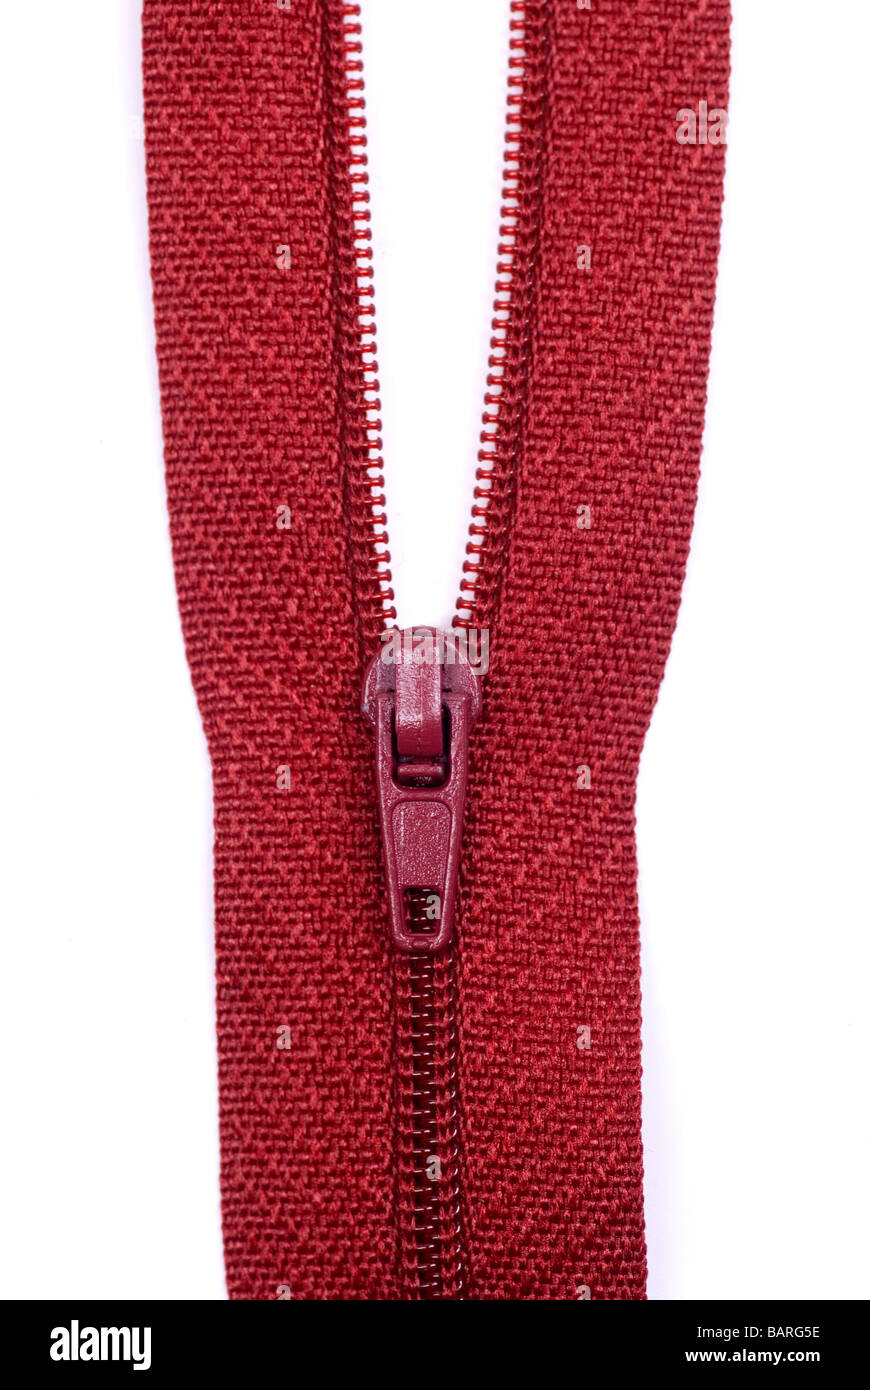 Close up of a red zipper against a white background - Stock Image